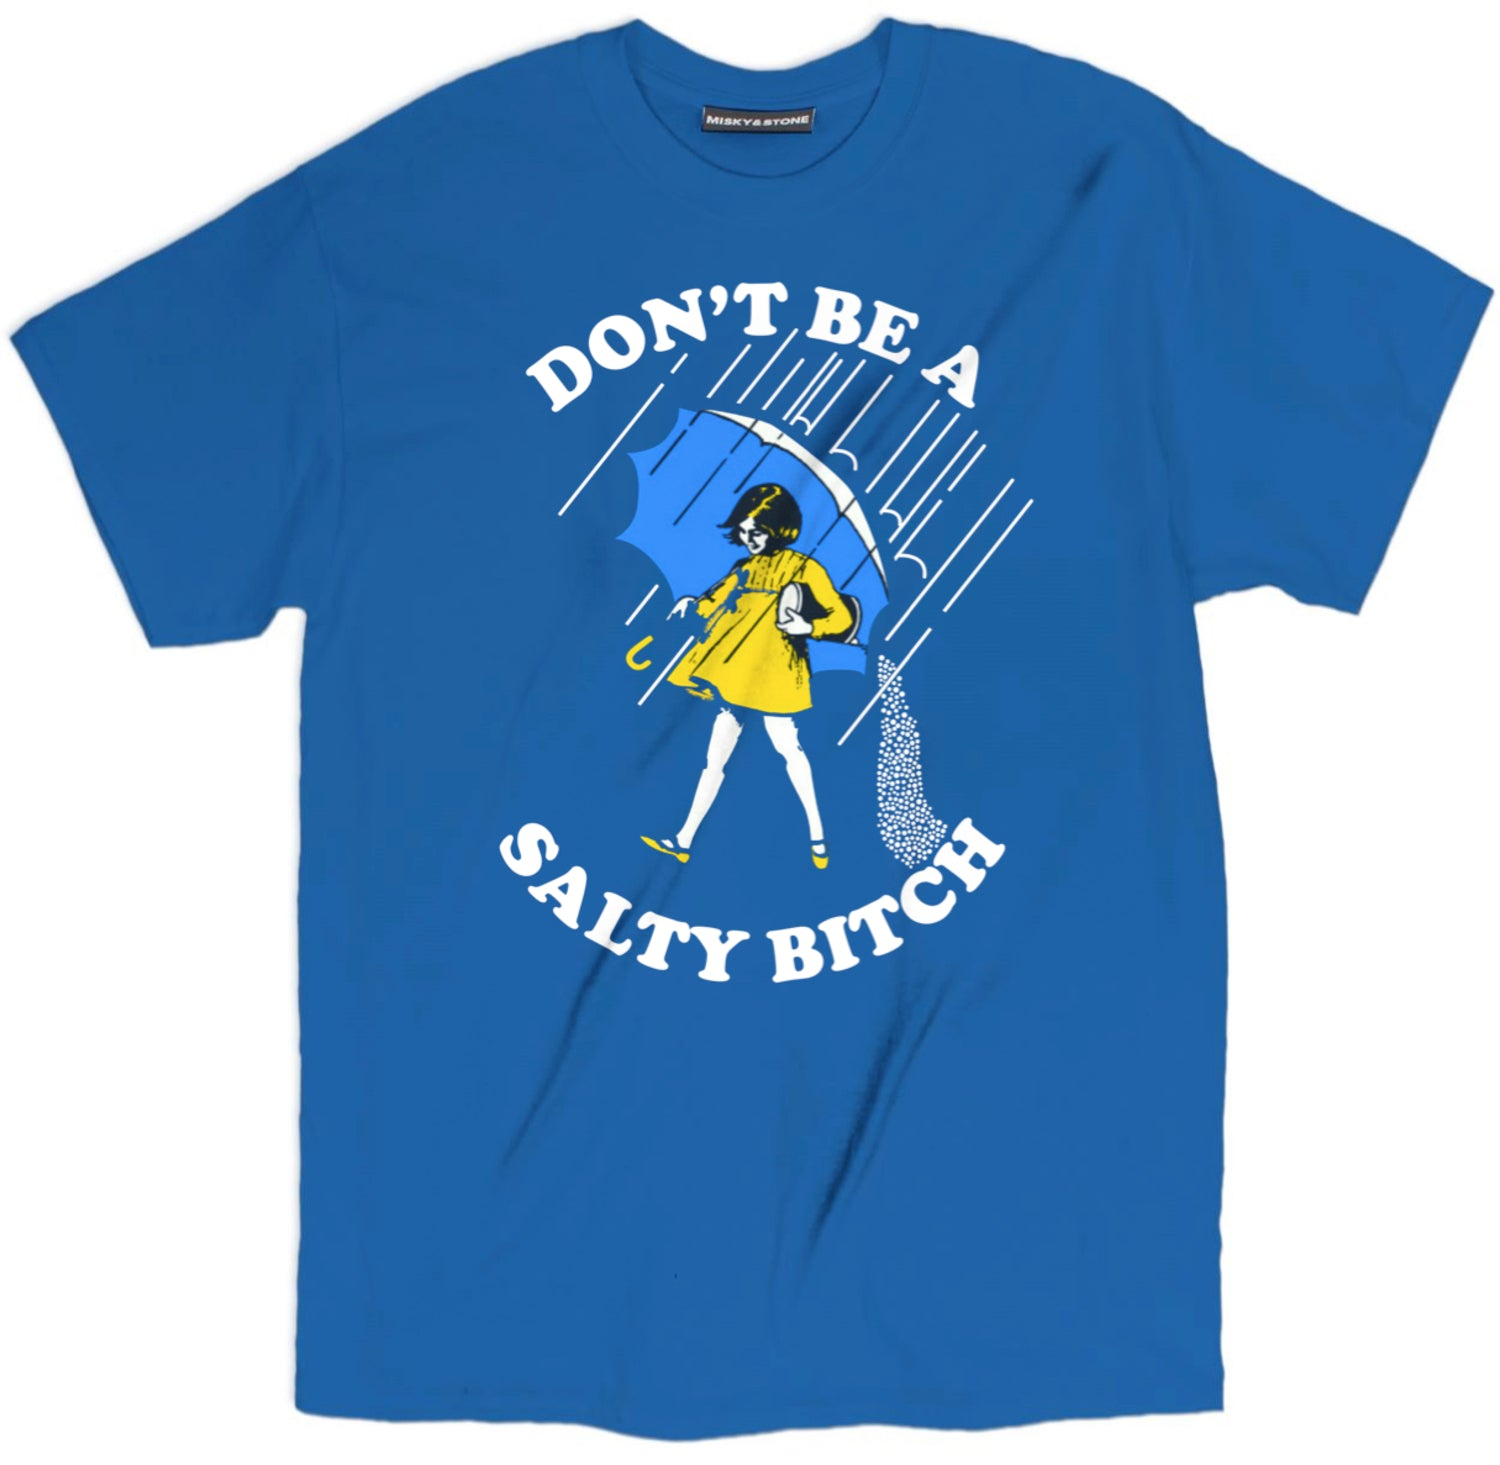 Salty Bitch Tee